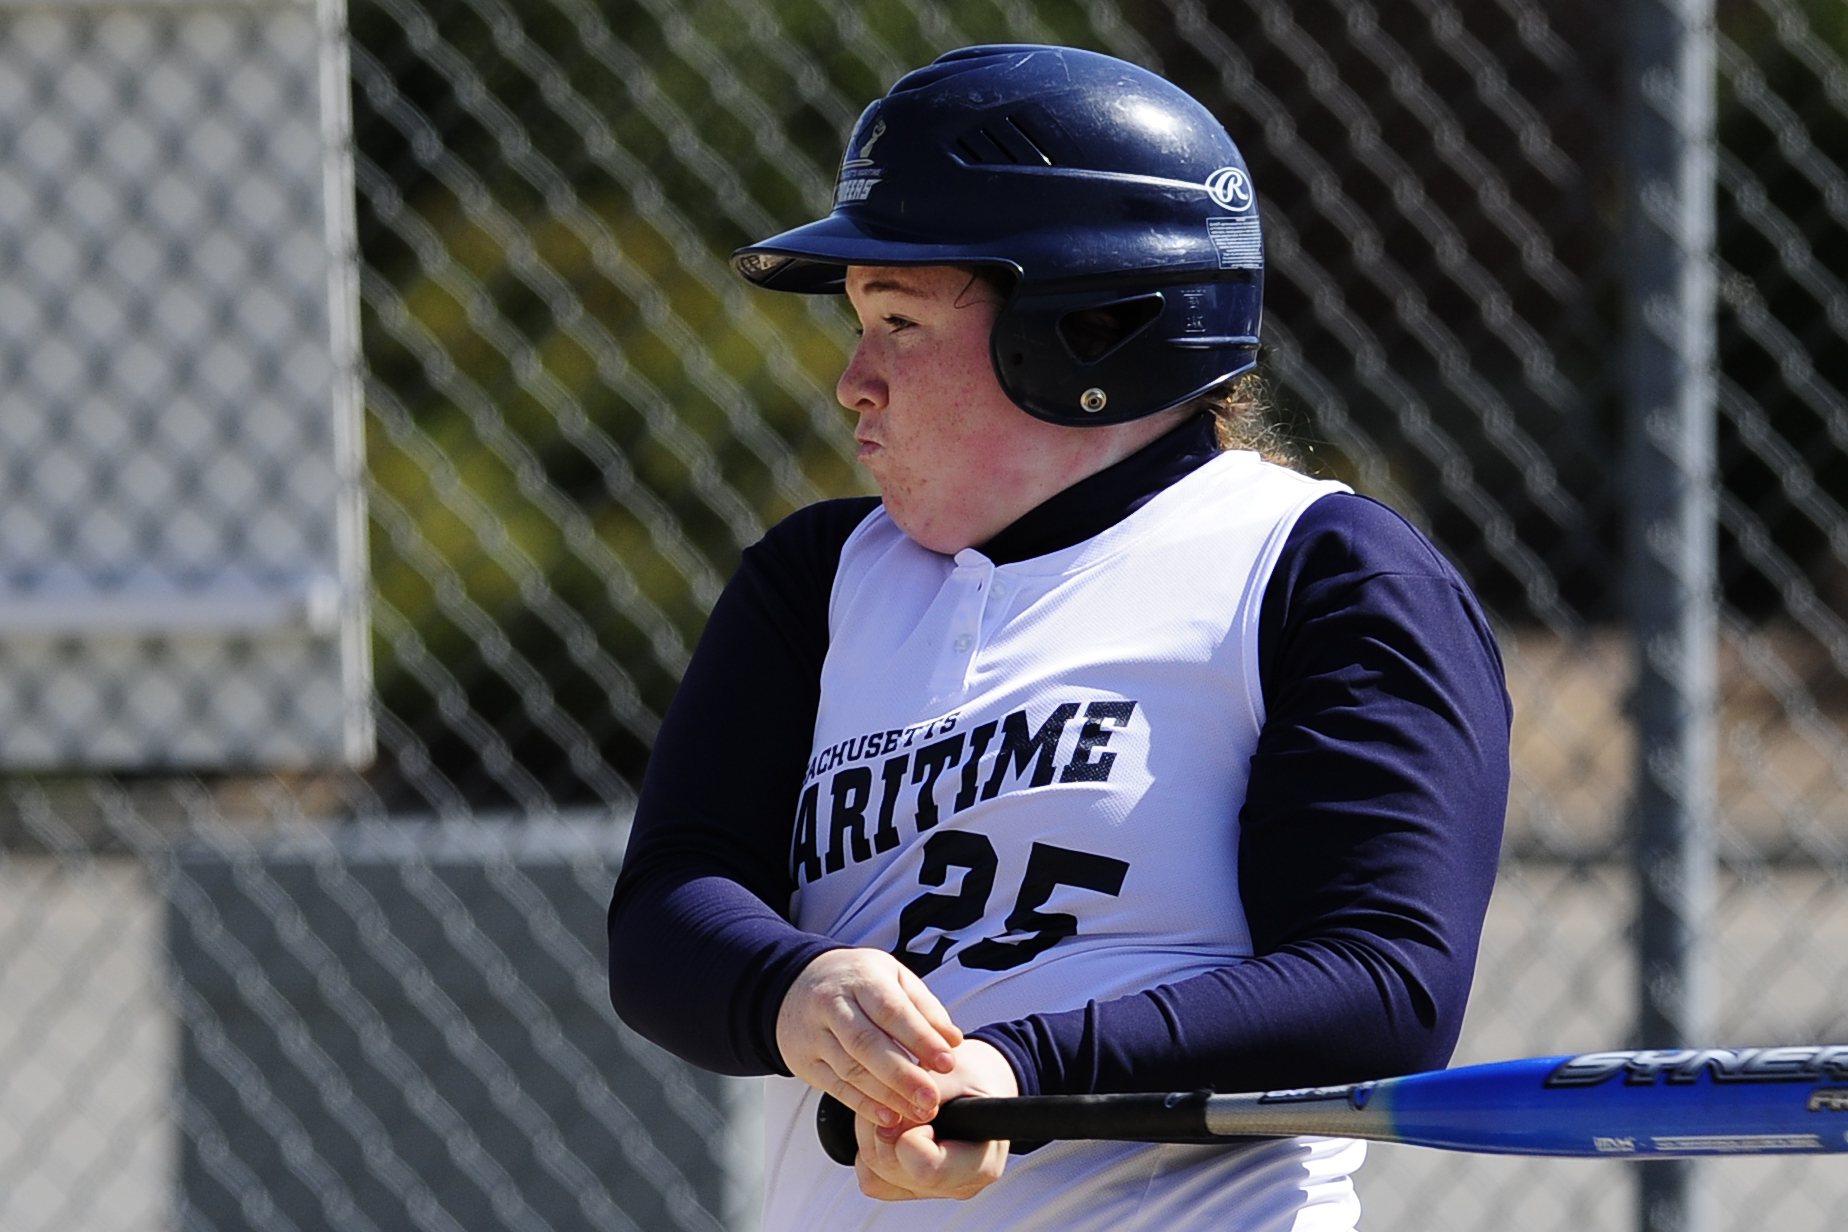 McLaughlin, Buck, Thibeault And Johnson Collect Singles As Softball Closes Out Season With MASCAC Twinbill Setback At Westfield State